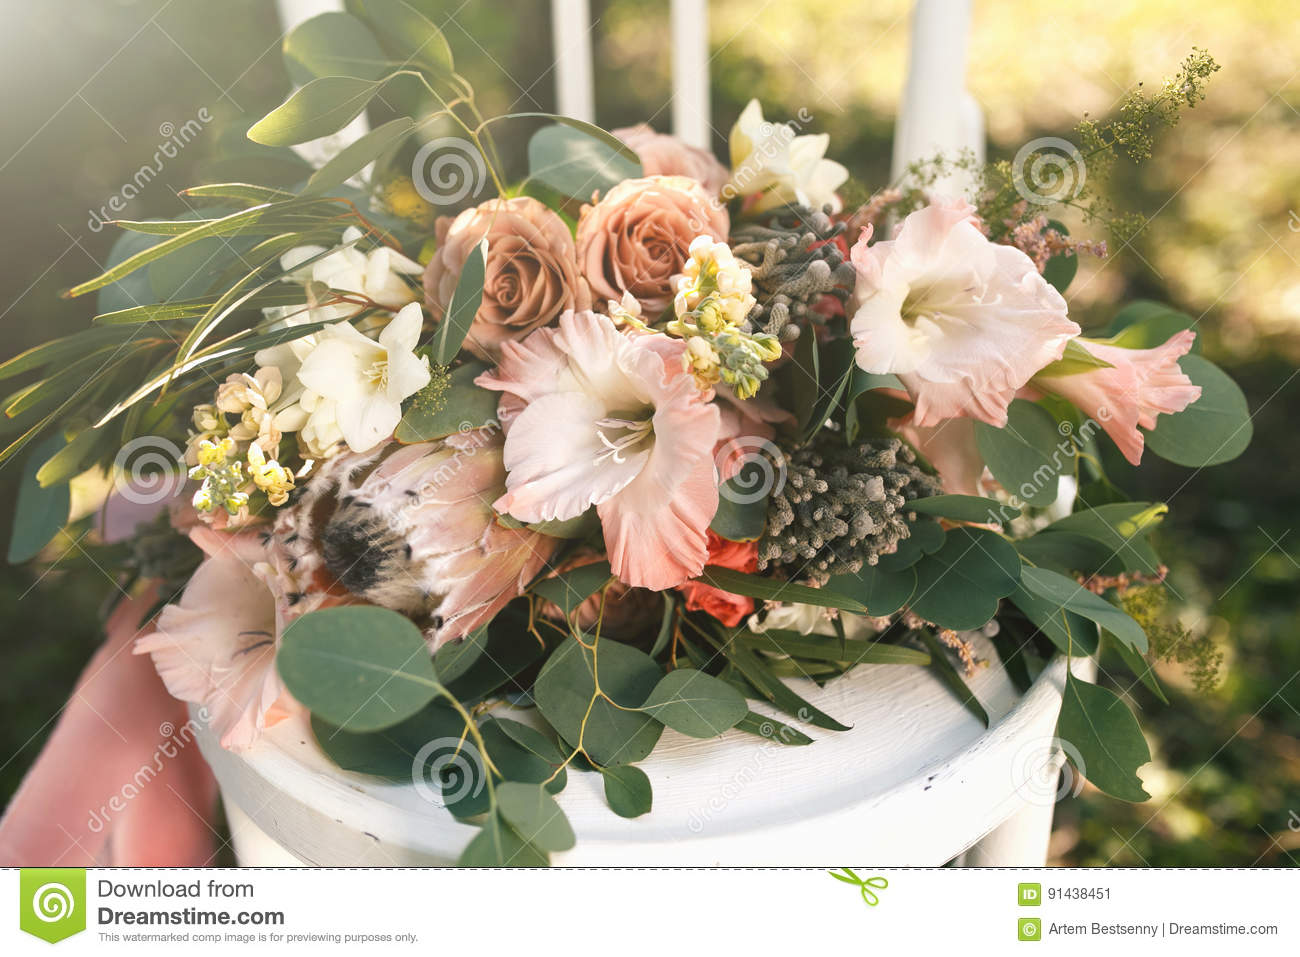 Colorful white and coral flowers illustration wedding and flowers a tender wedding bouquet of pink white and coral flowers and mightylinksfo